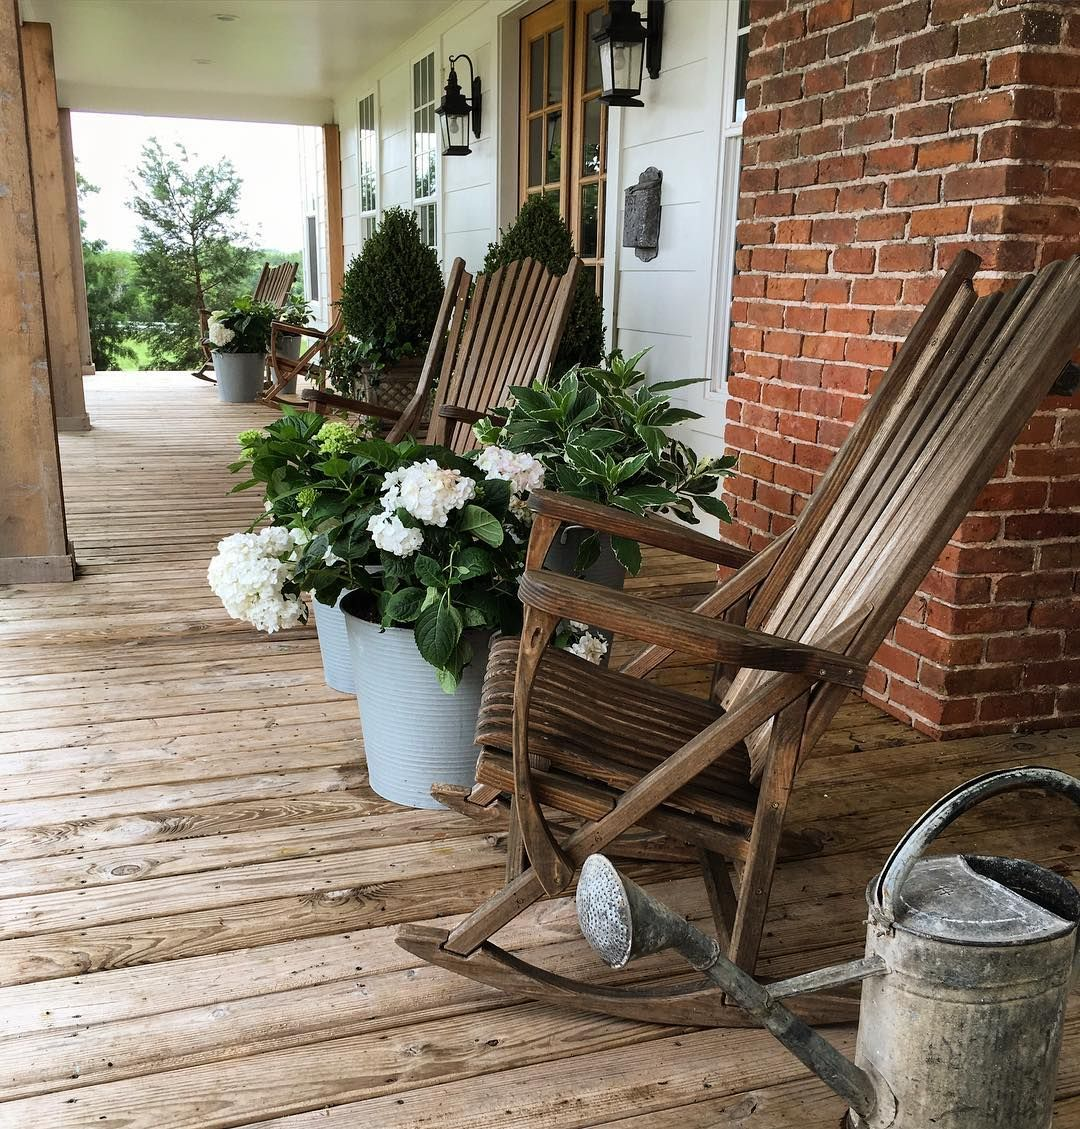 Vintage French Soul Chip And Joanna Gaines House Tour Fixer Upper Farmhouse Joanna Gaines House House Front Porch Joanna Gaines Farmhouse